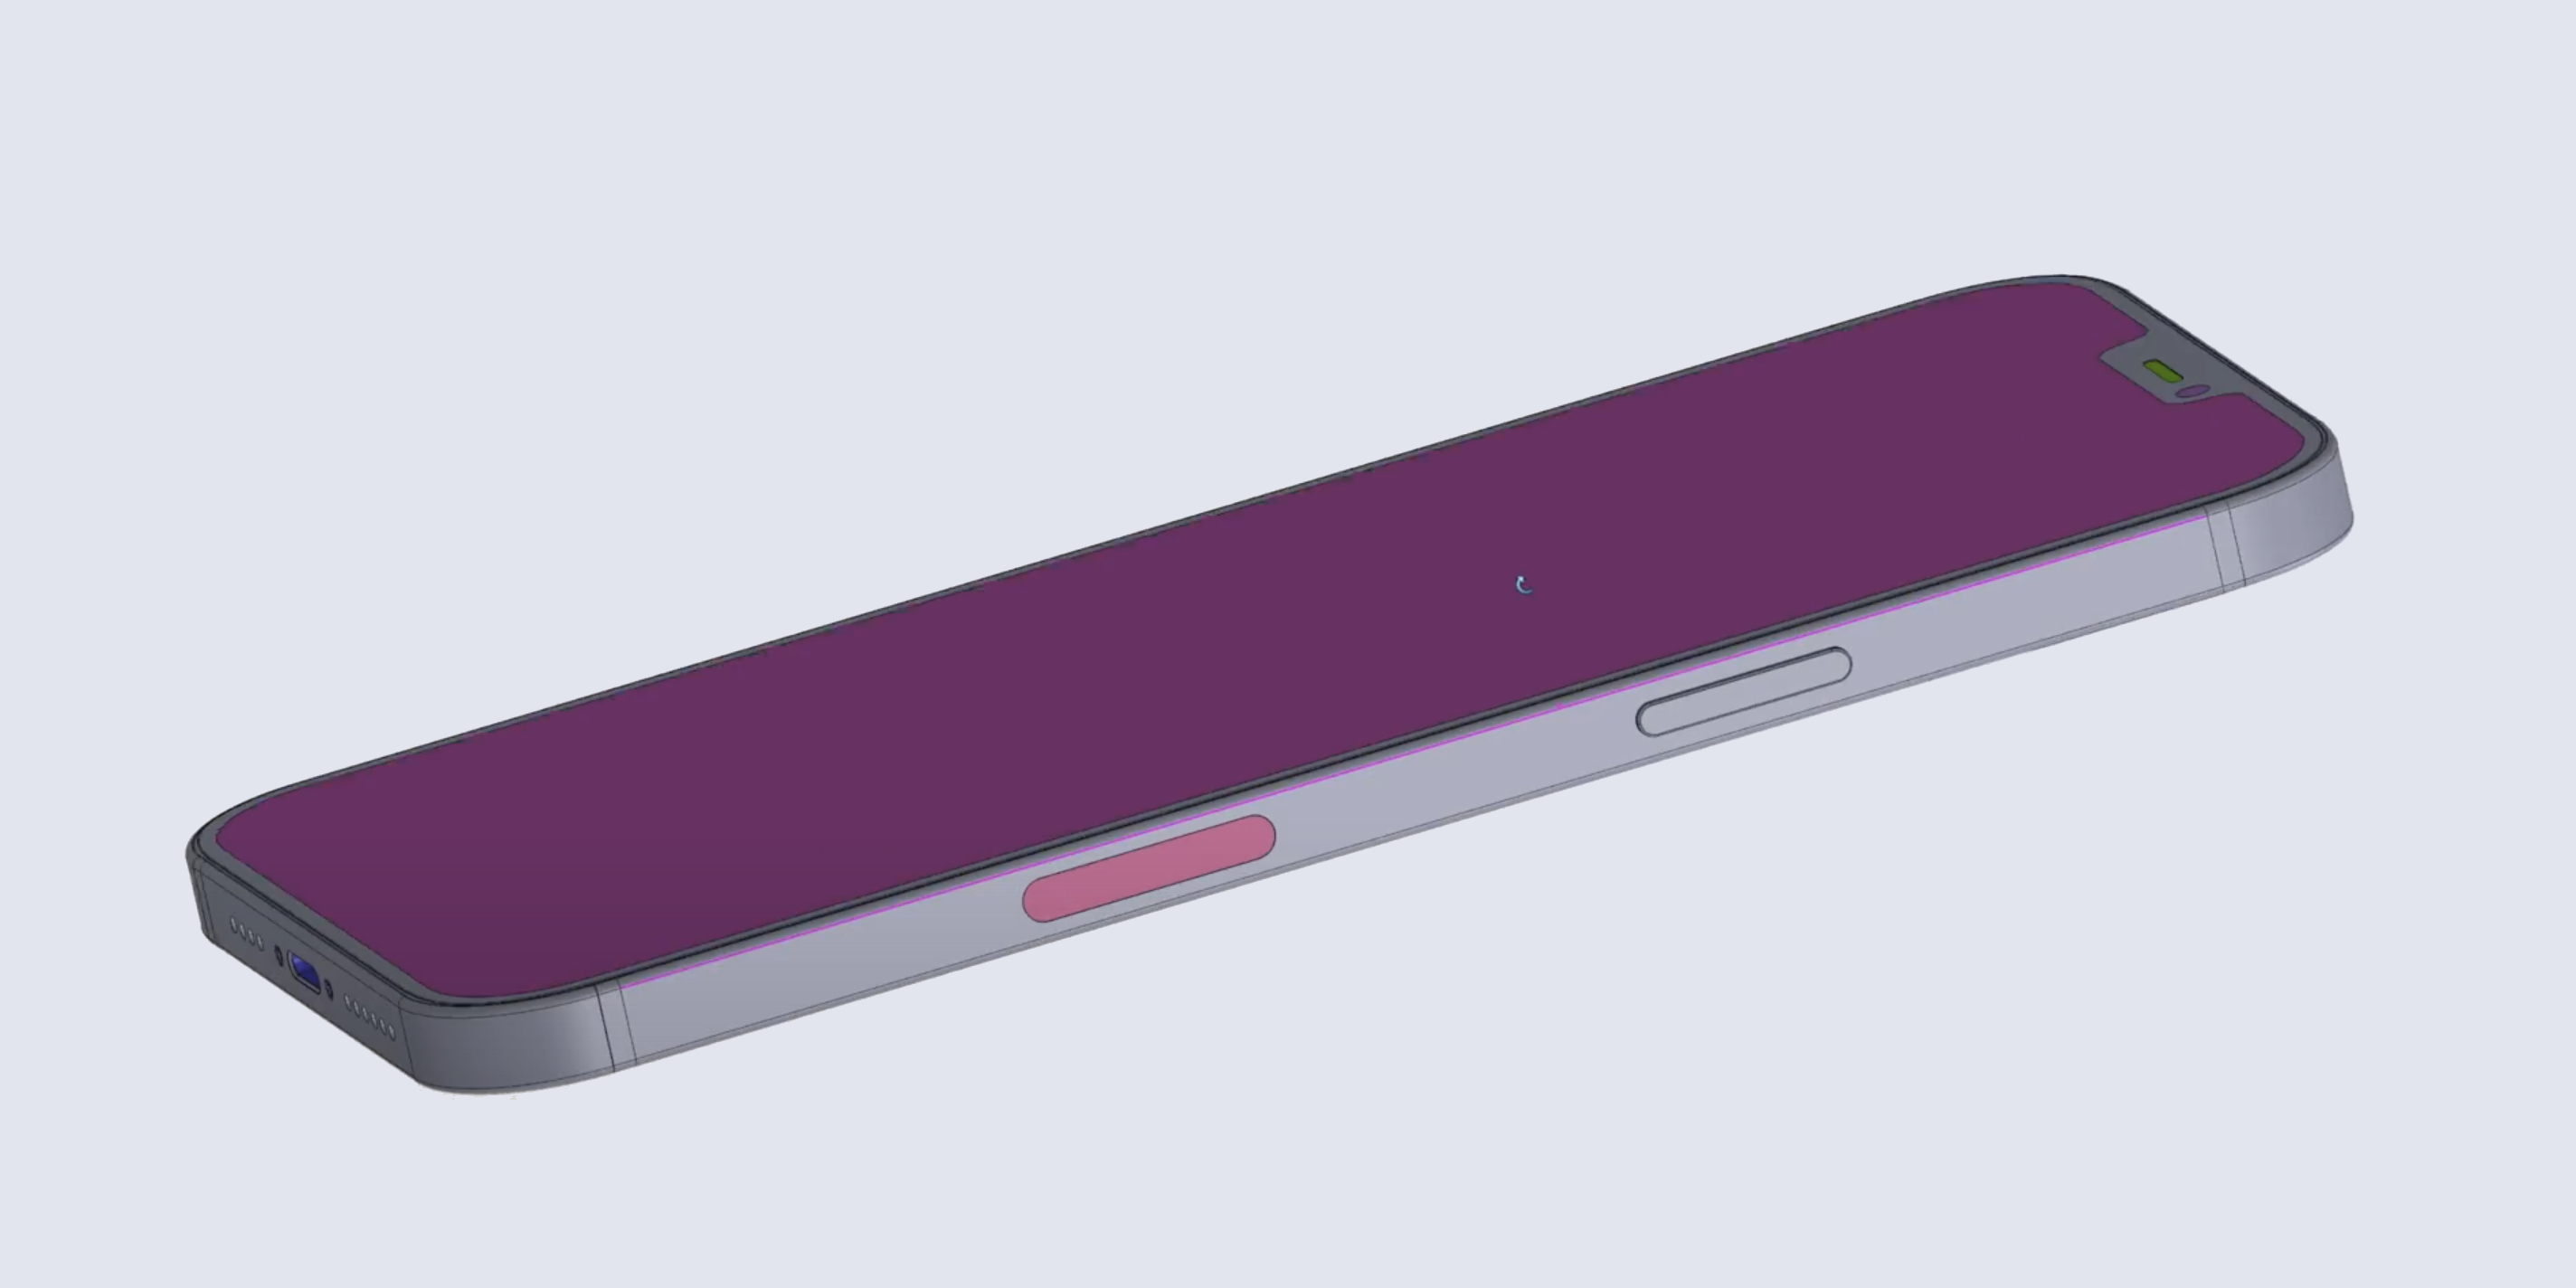 Iphone 12 Pro Max Schematics Show Off Thinner Body Design With Smaller Screen Bezels Bigger Antenna Lines And Rear Cameras Smart Connector 9to5mac